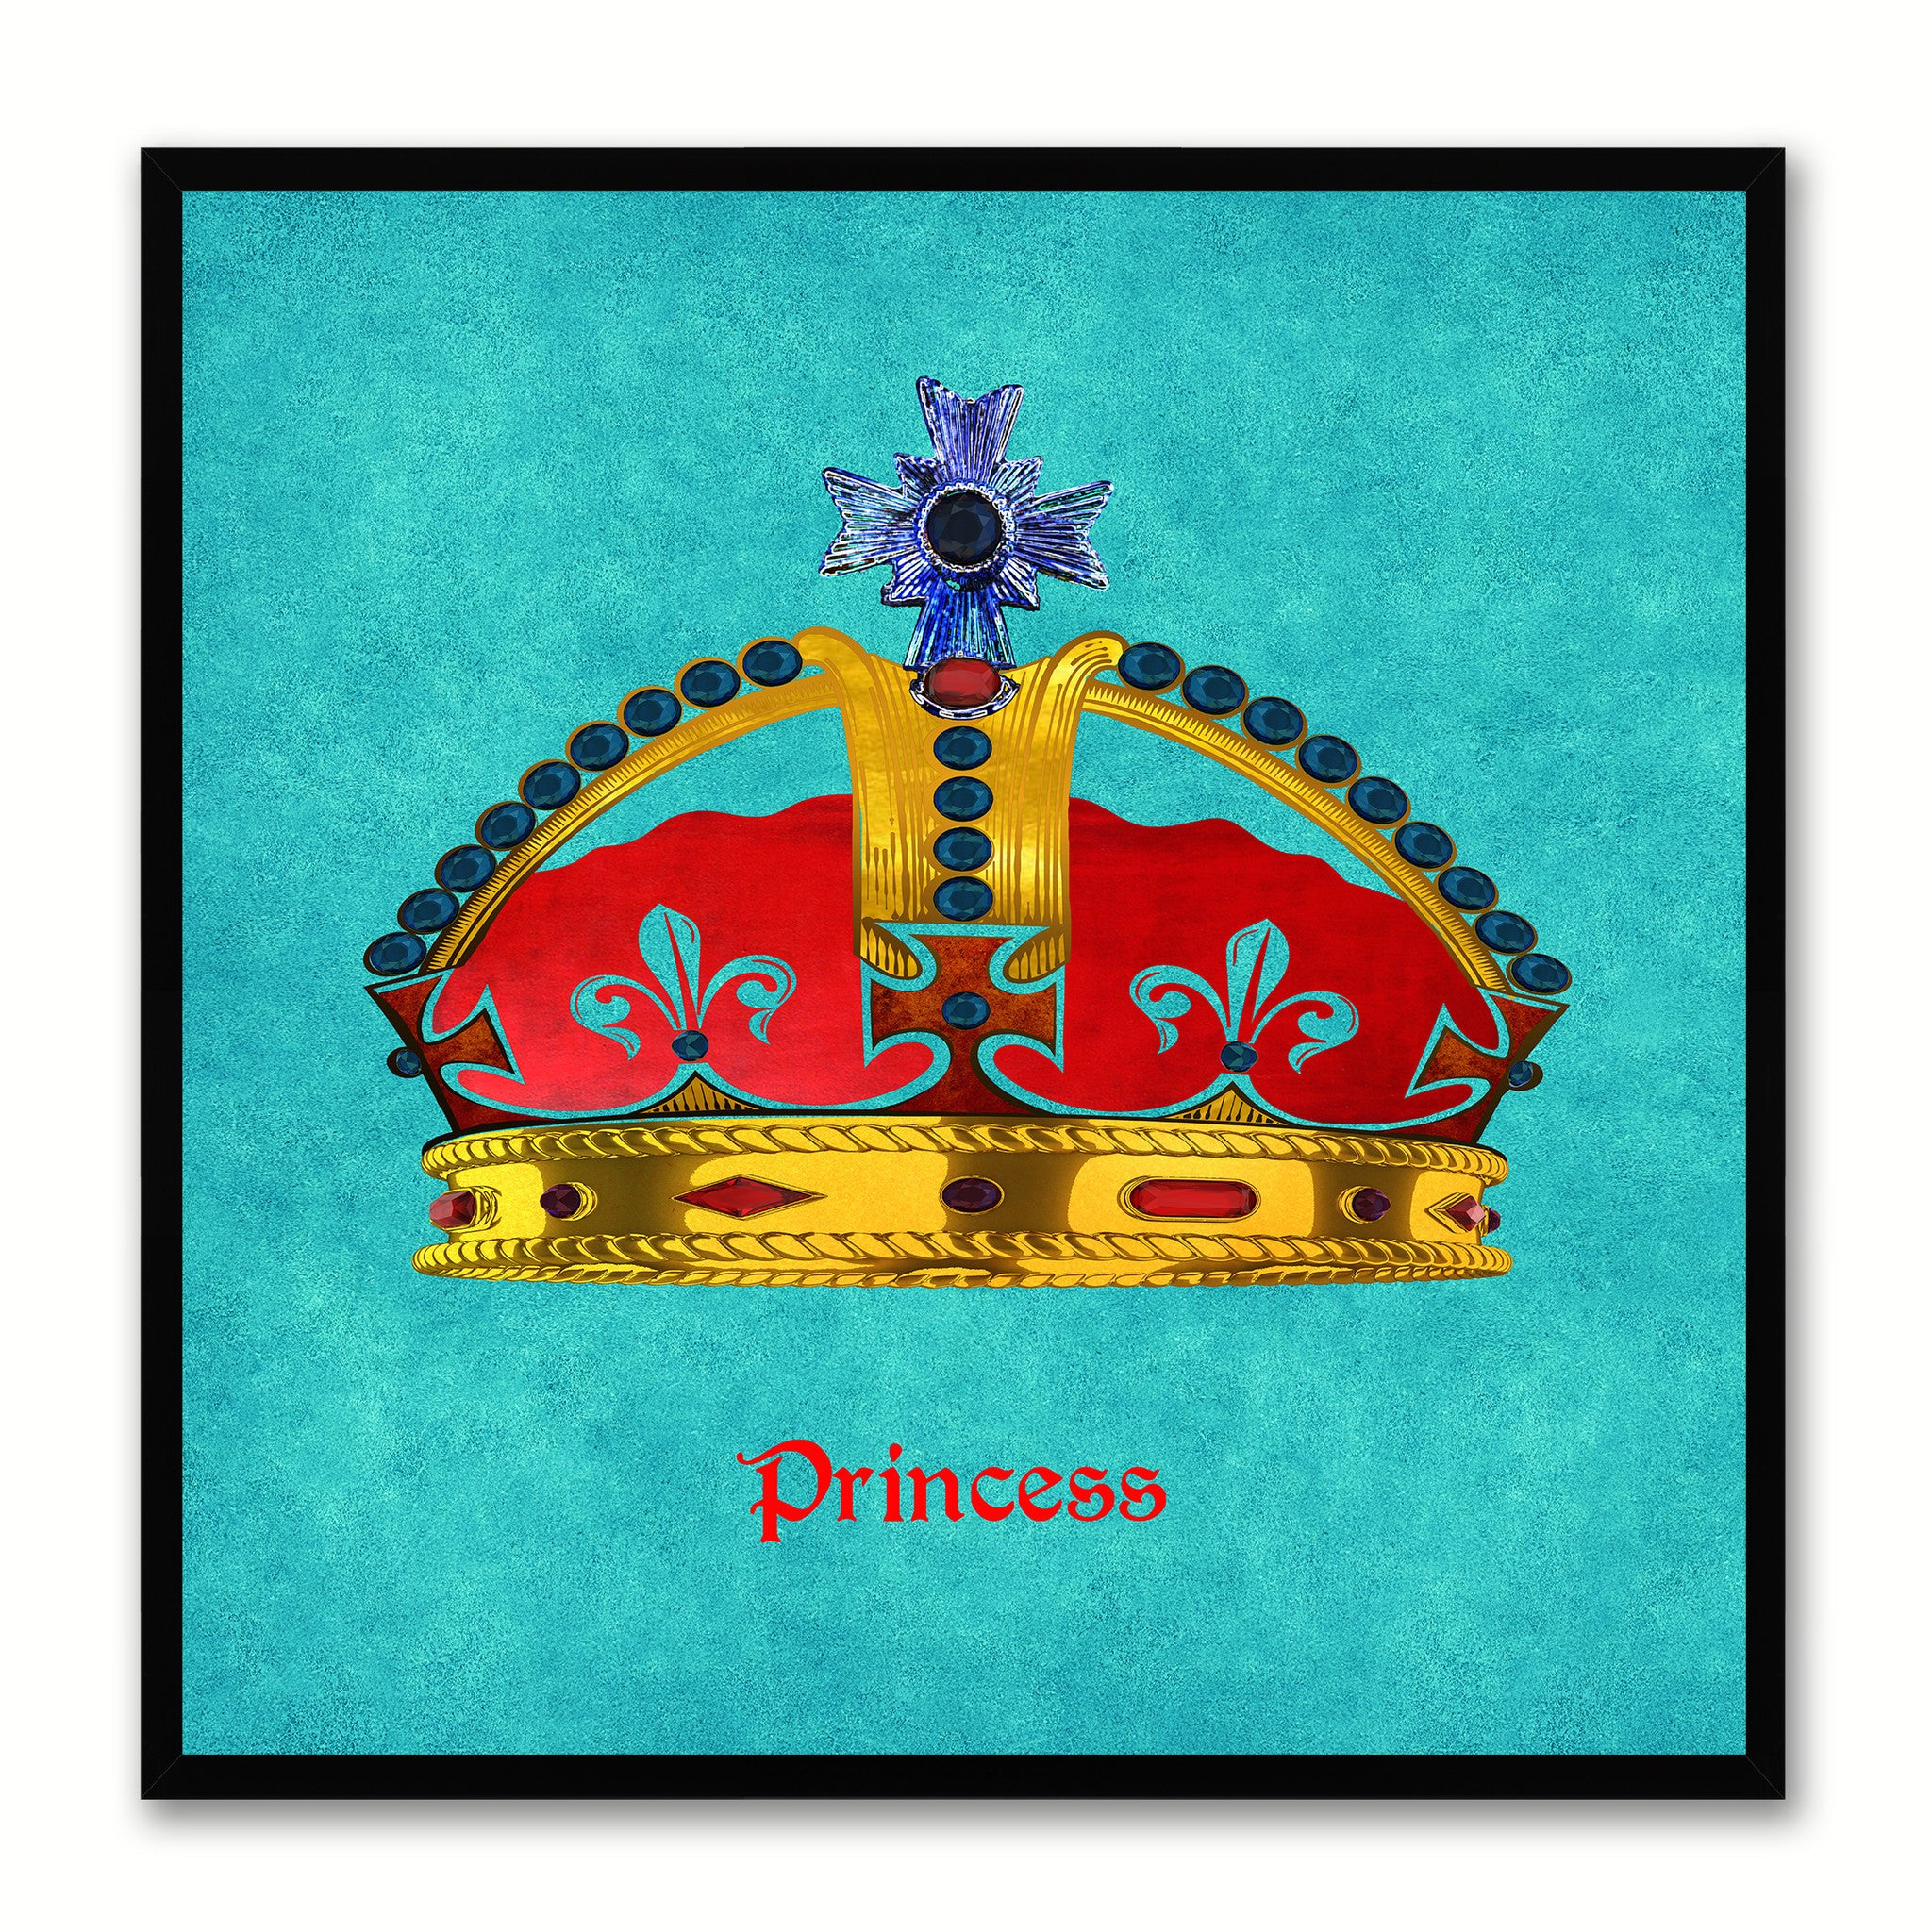 Princess Aqua Canvas Print Black Frame Kids Bedroom Wall Home Décor